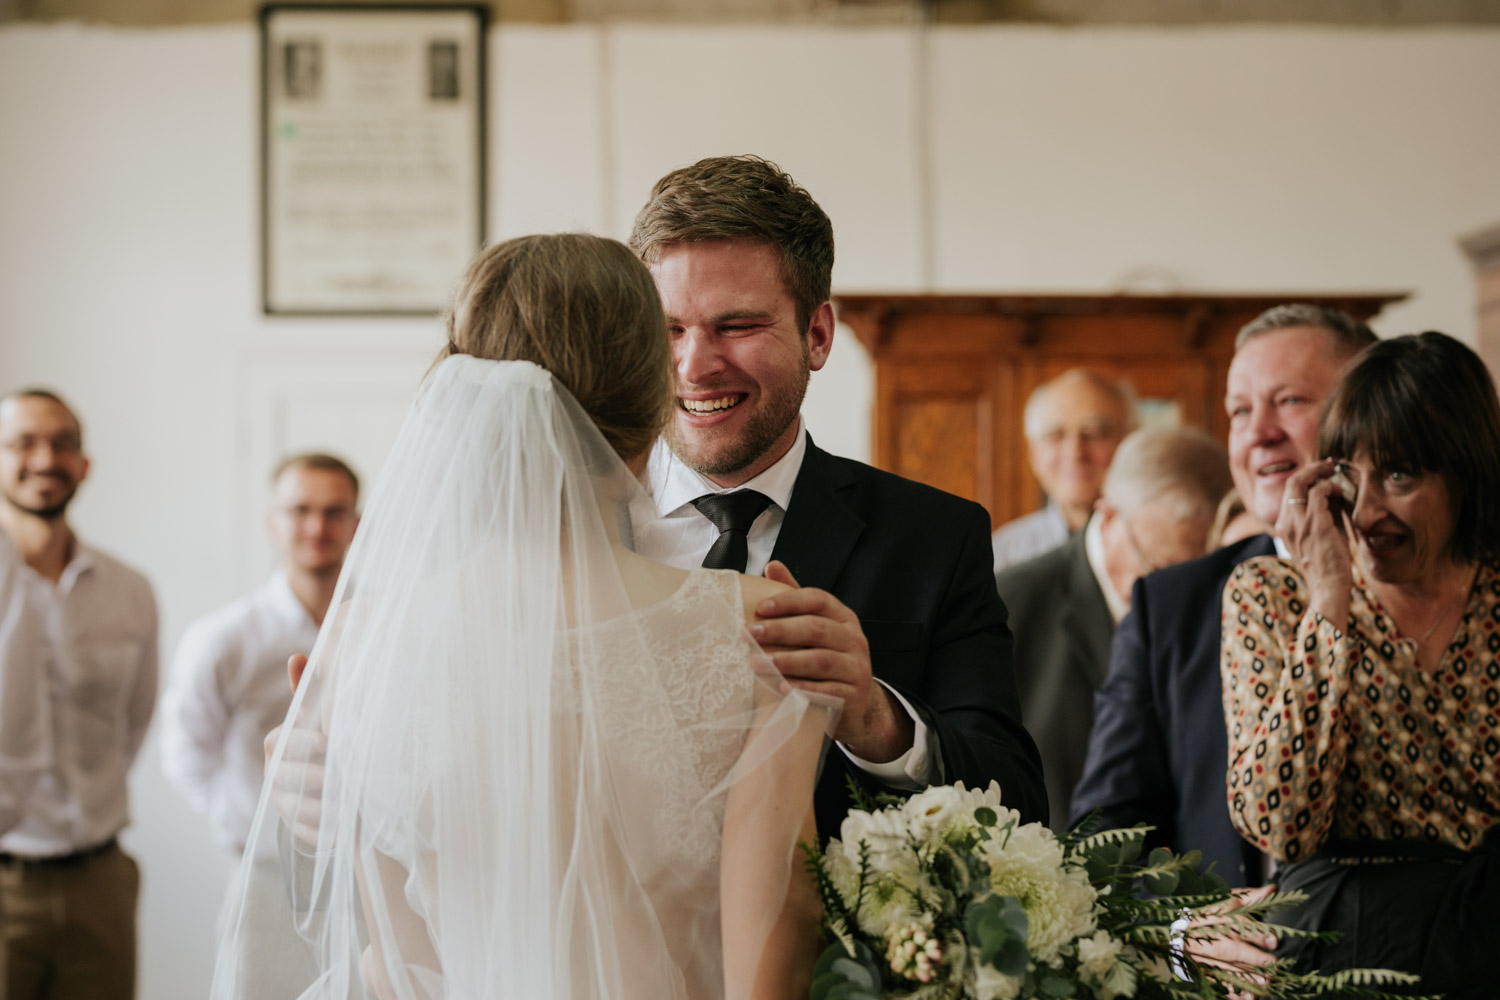 Amazing Expression And Reaction When Grooms Sees His Bride For First Time